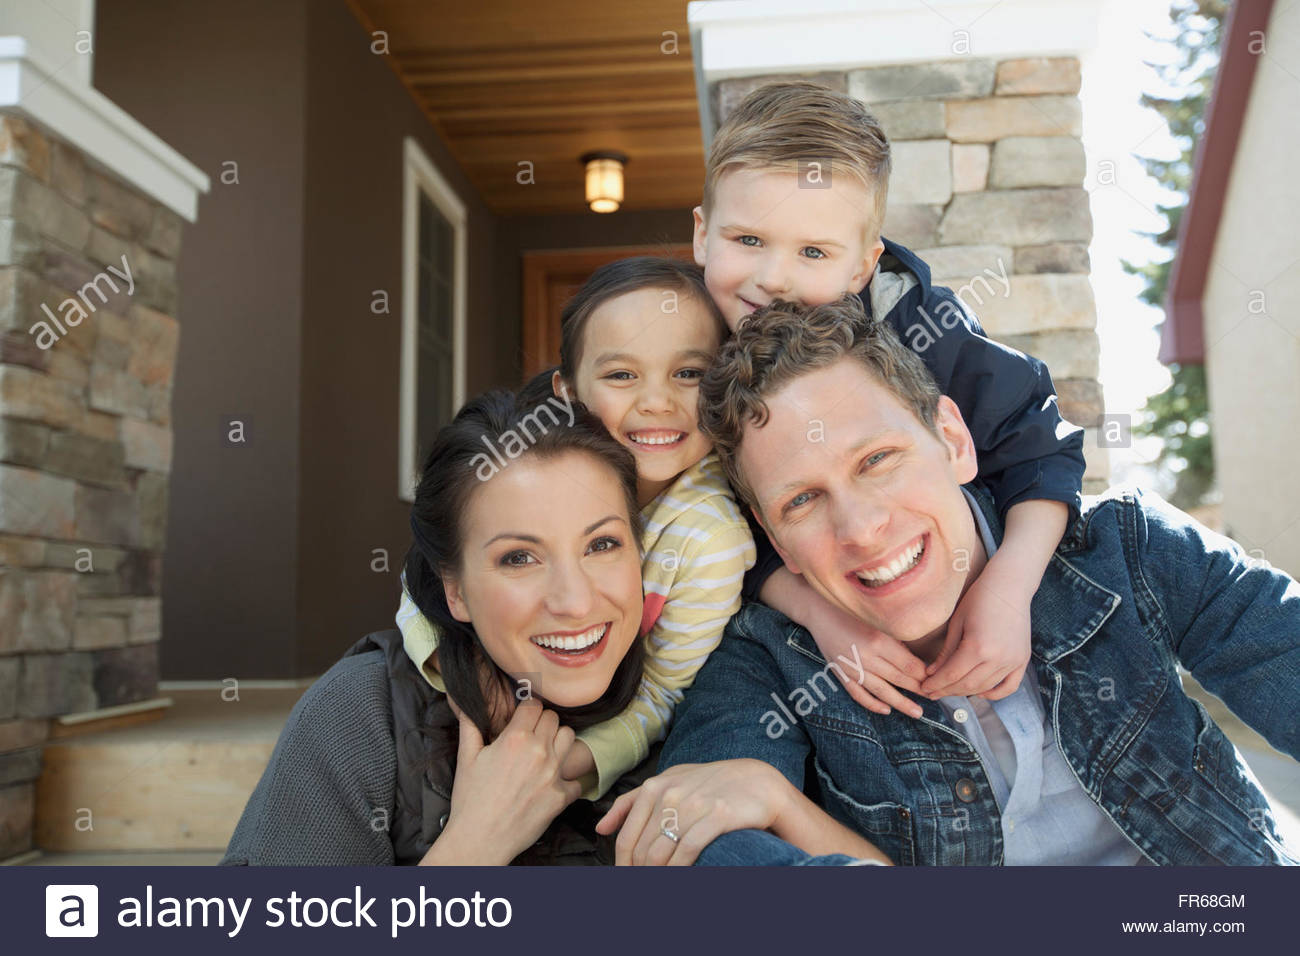 portrait of young family outside residence - Stock Image